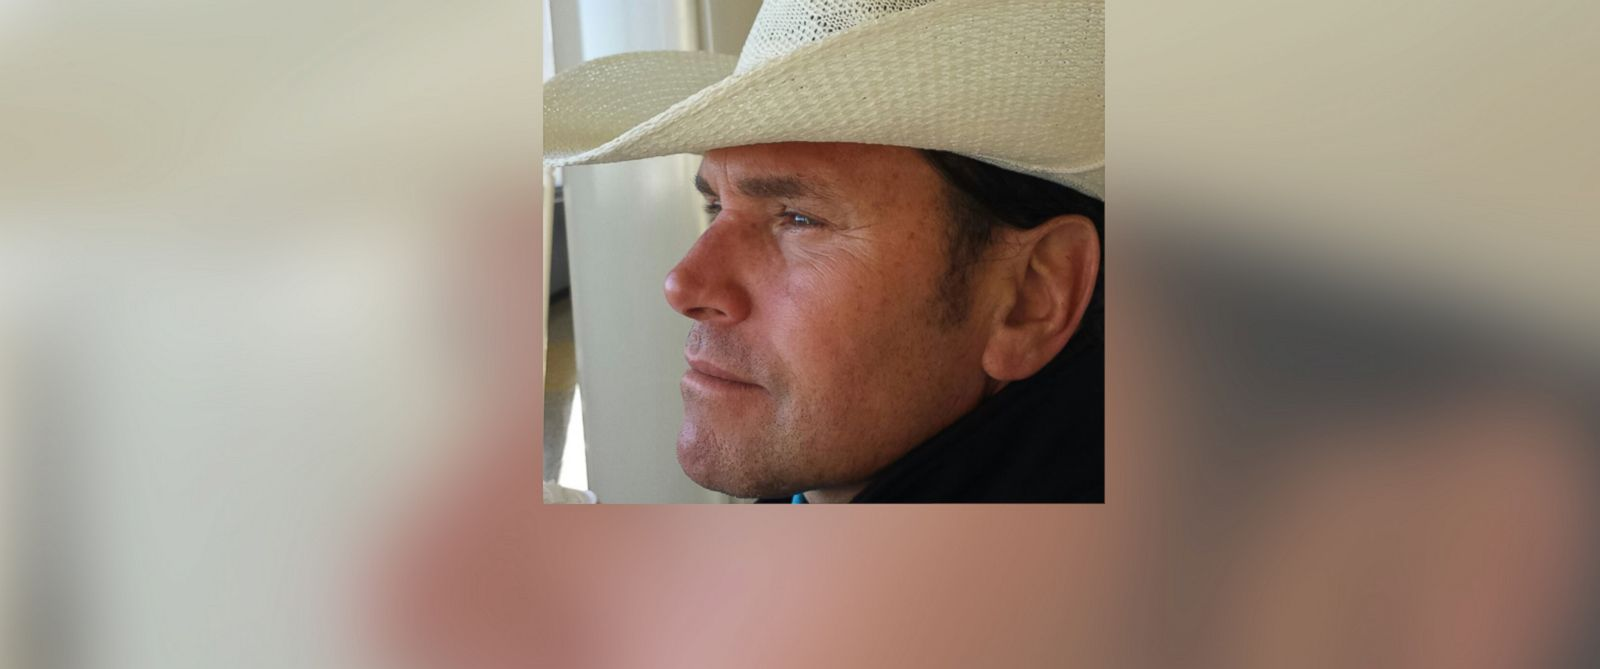 PHOTO: Carlos Arredondo is known as the cowboy hat-wearing hero from last years Boston Marathon bombing.